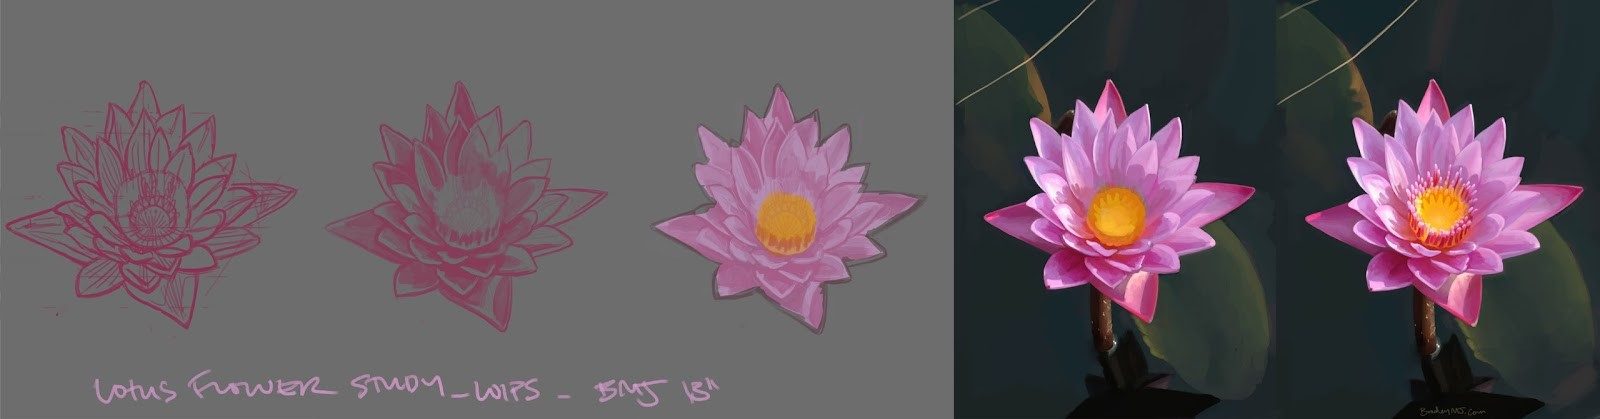 lotus flower study breakdown